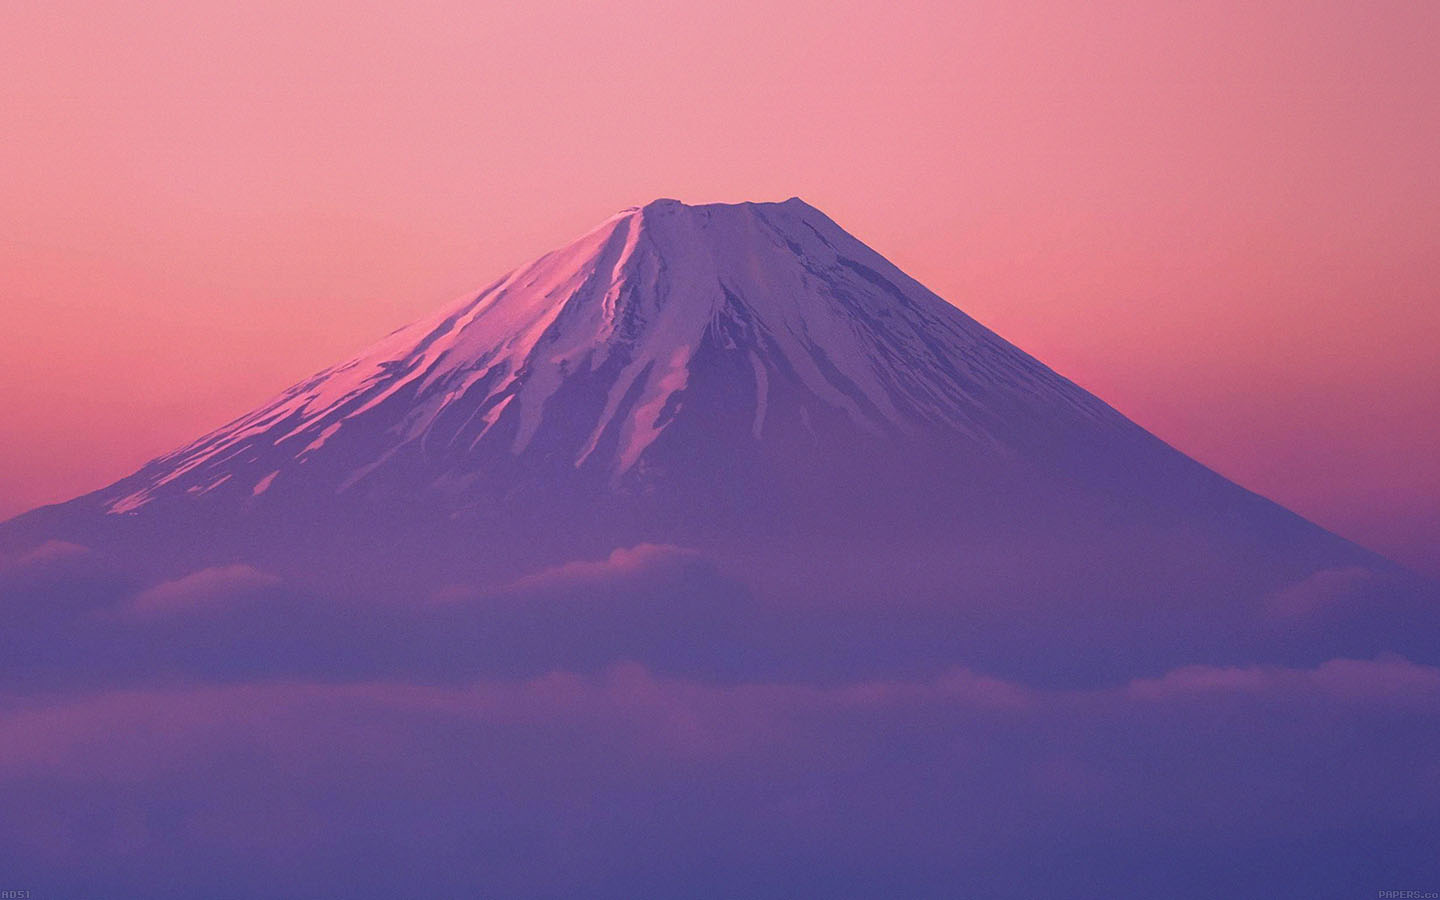 ad51-fuji-mountain-alone-wallpaper